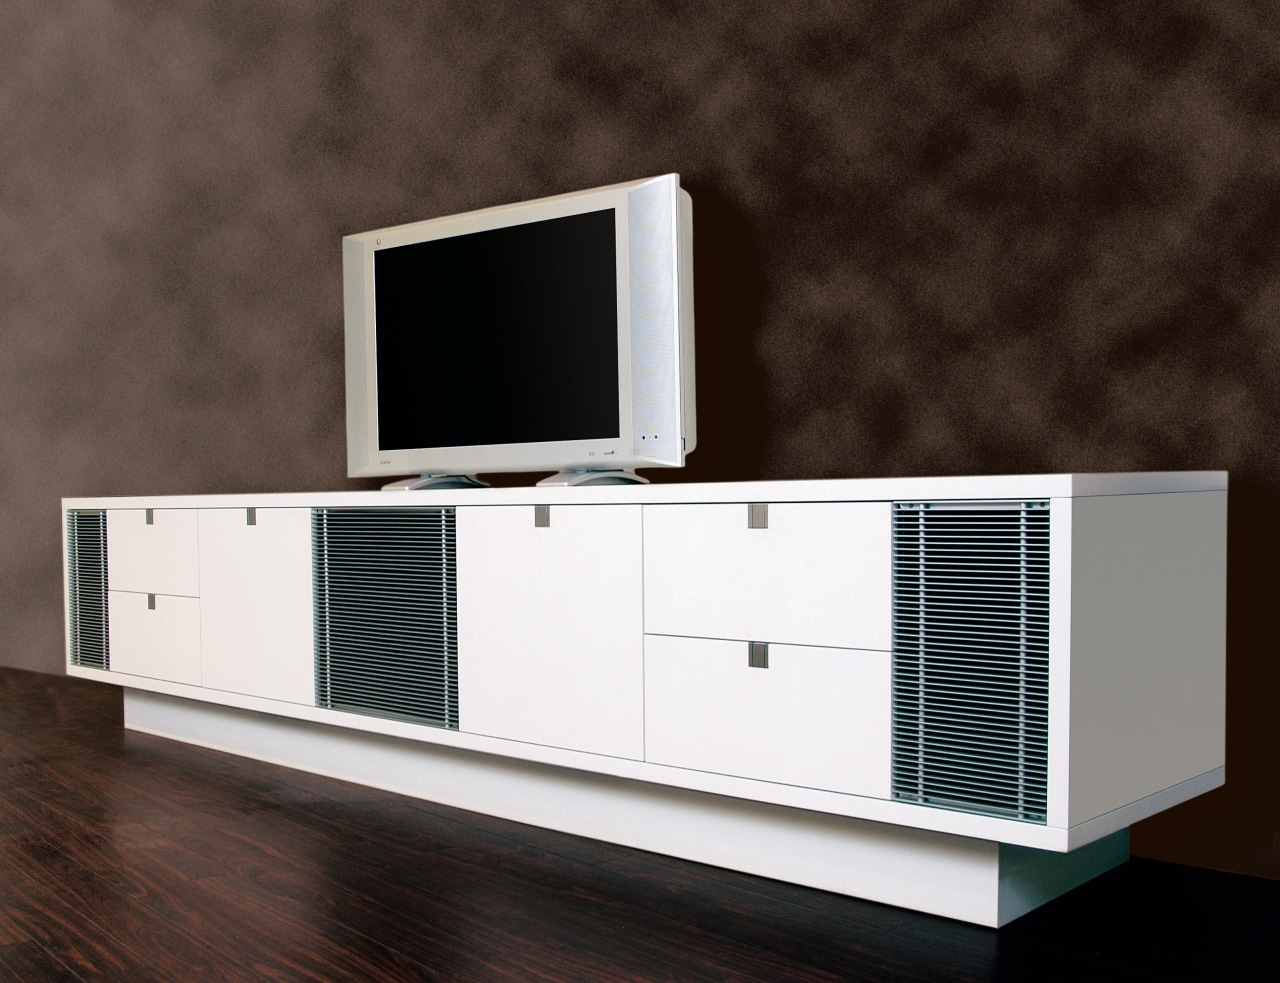 View of theatre furniture furniture, product, product design, sideboard, black